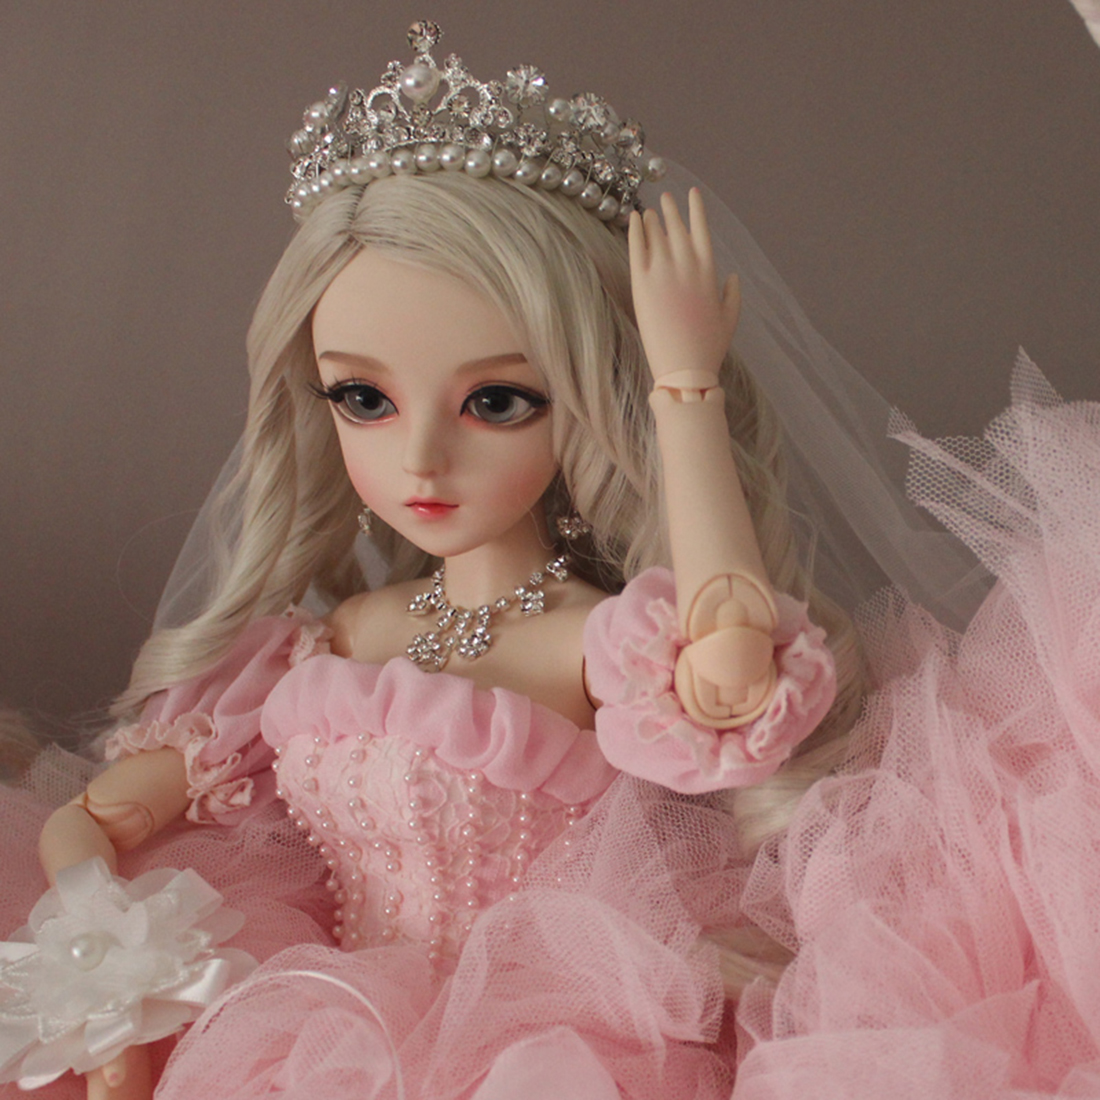 60cm 1/3 BJD Dolls Mechanical Joints Wedding Dress  Set - Pink Full Clothes Crown Shoes Without Doll